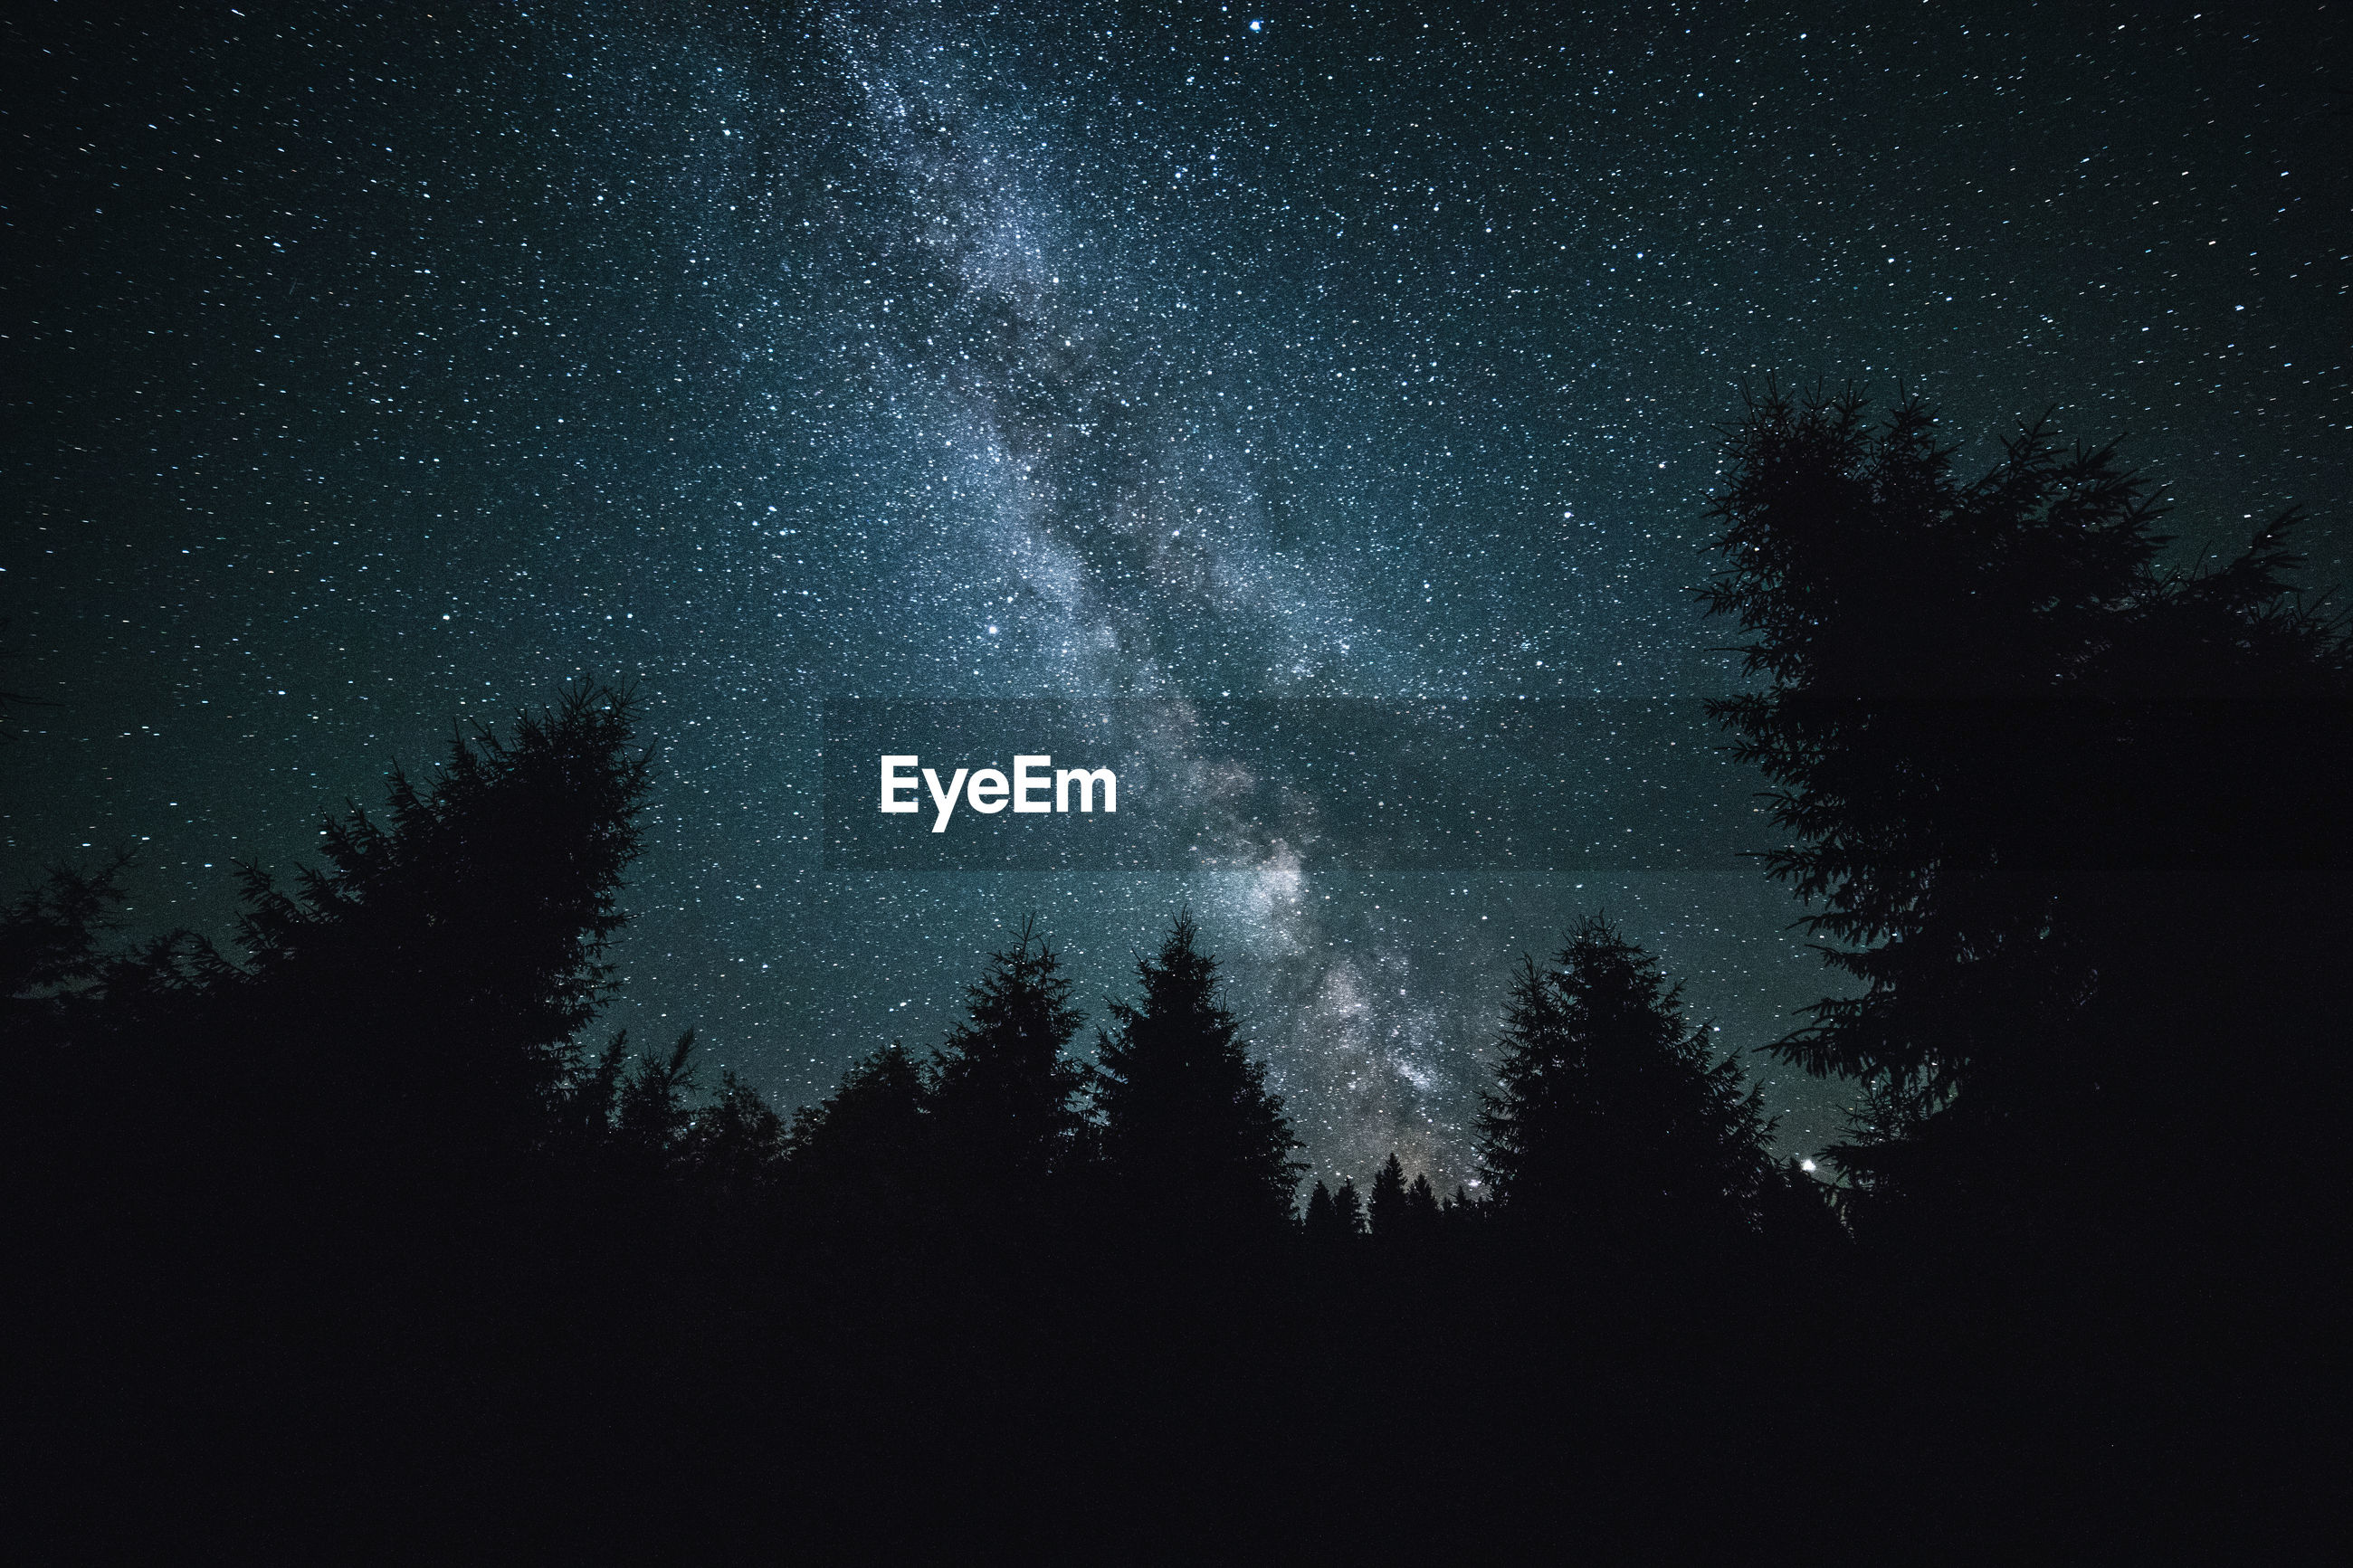 LOW ANGLE VIEW OF SILHOUETTE TREES AGAINST STAR FIELD AT NIGHT